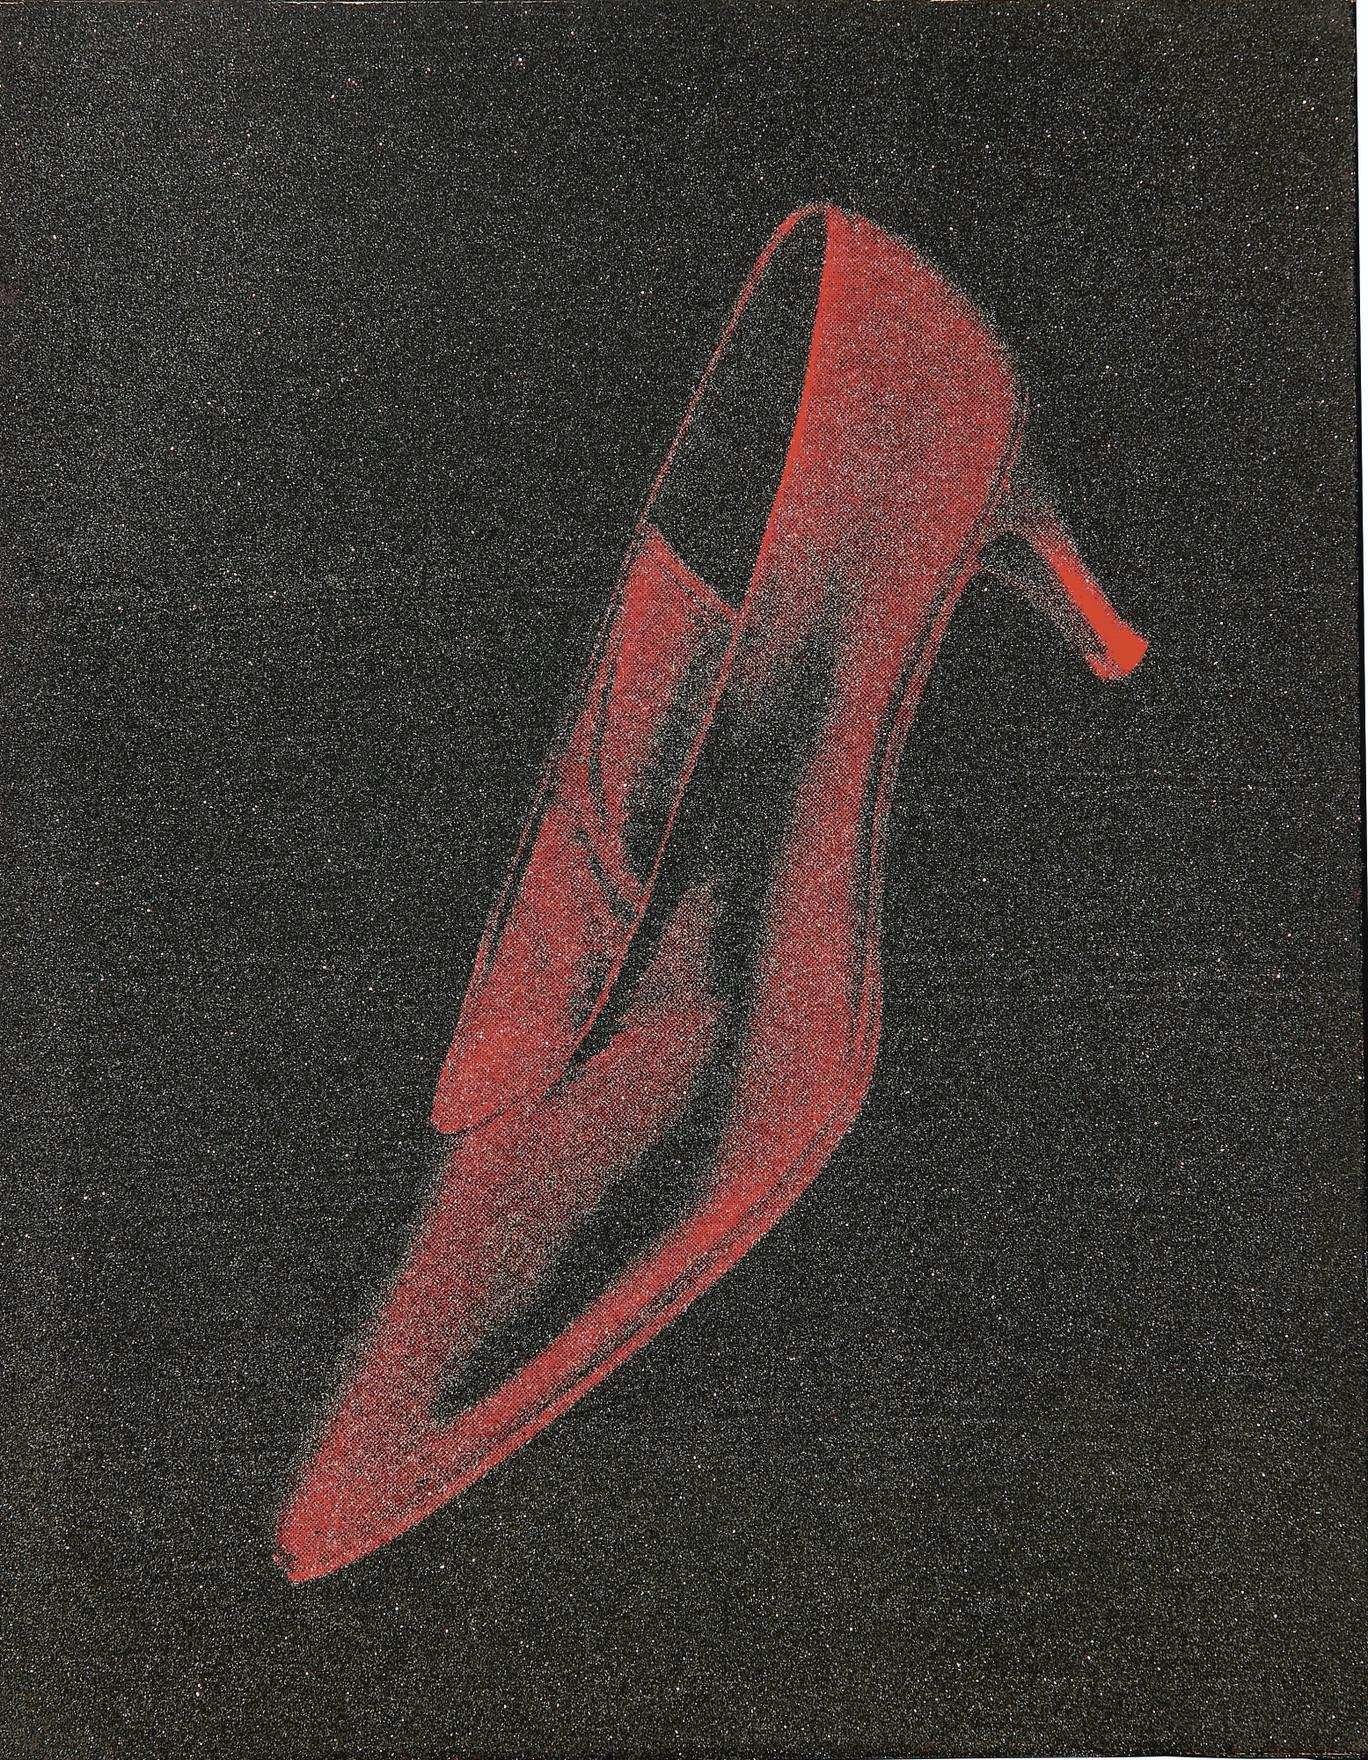 Andy Warhol-Diamond Dust Red Shoe-1980